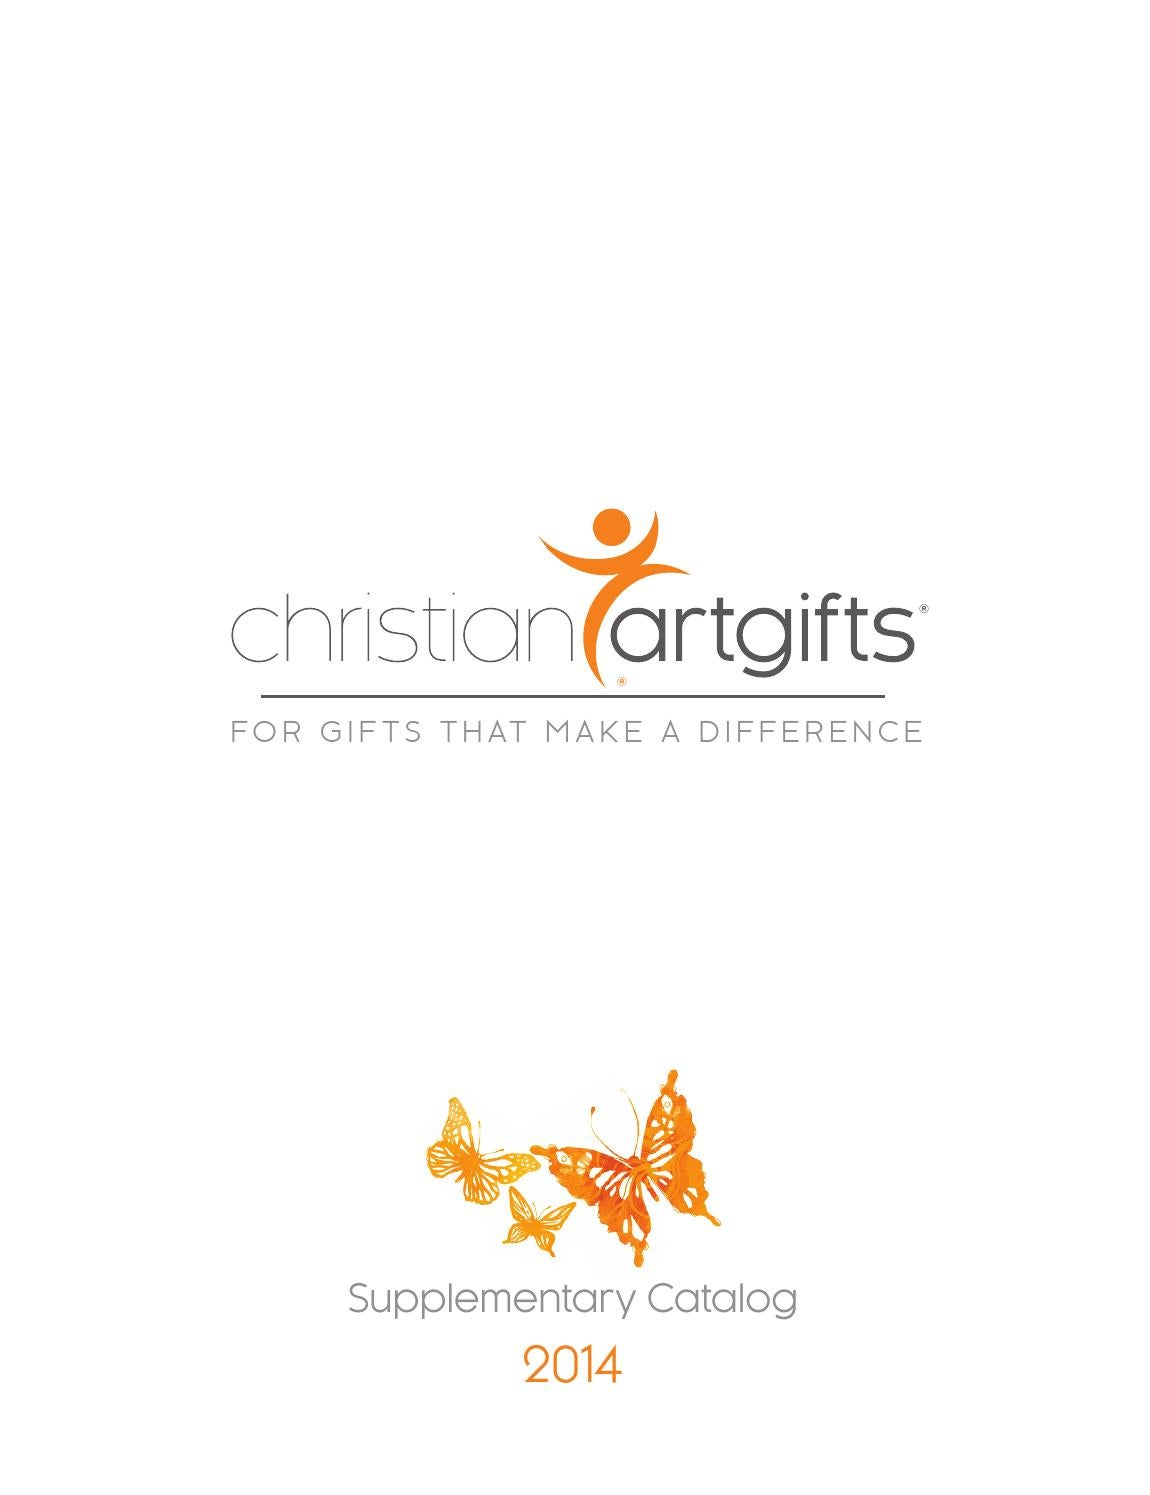 Christian Art Gifts Supplementary Catalog 2014 by Semillas